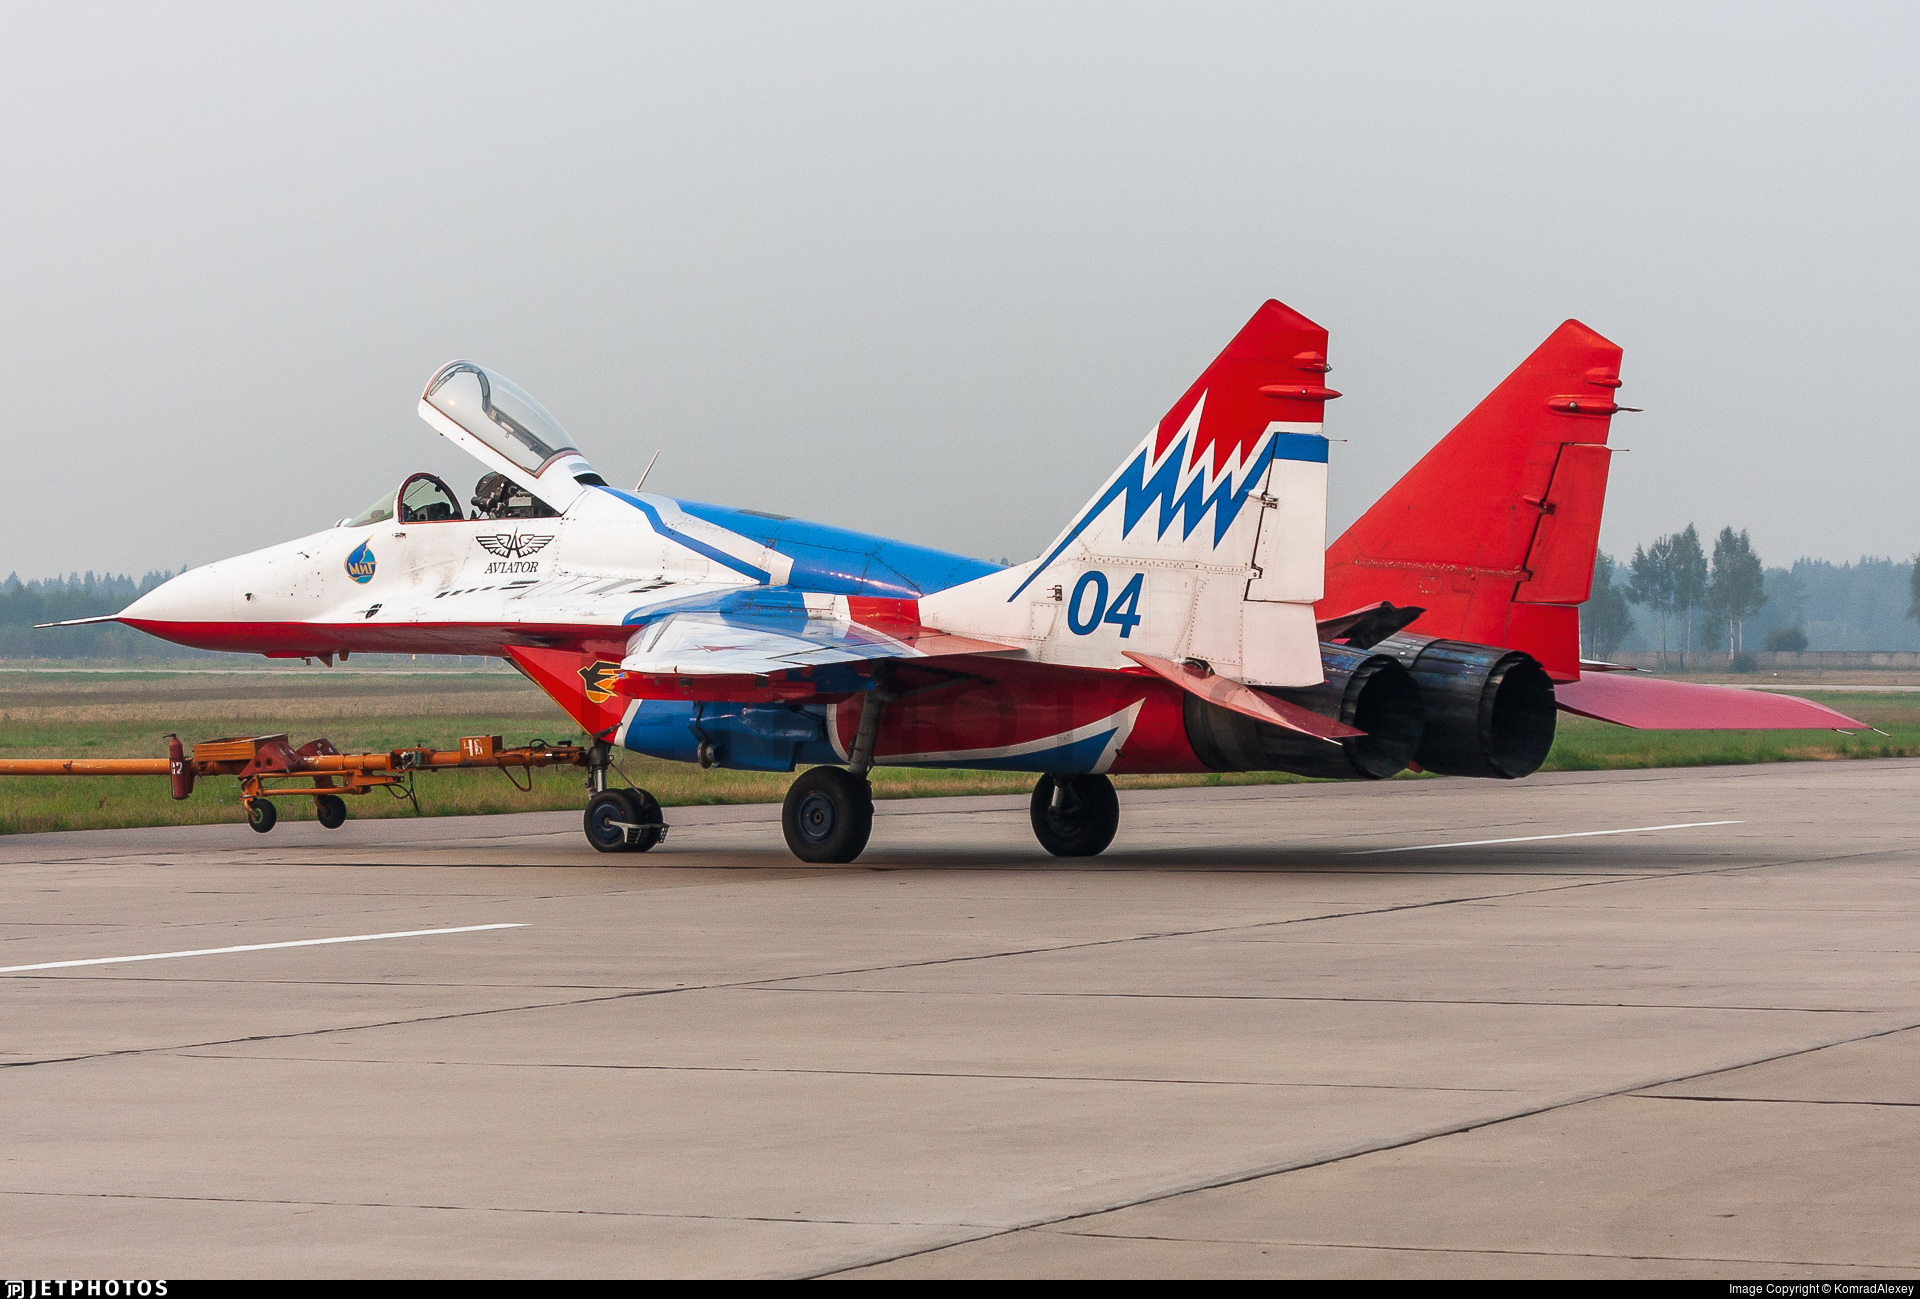 04 - Mikoyan-Gurevich MiG-29S Fulcrum C - Russia - Air Force